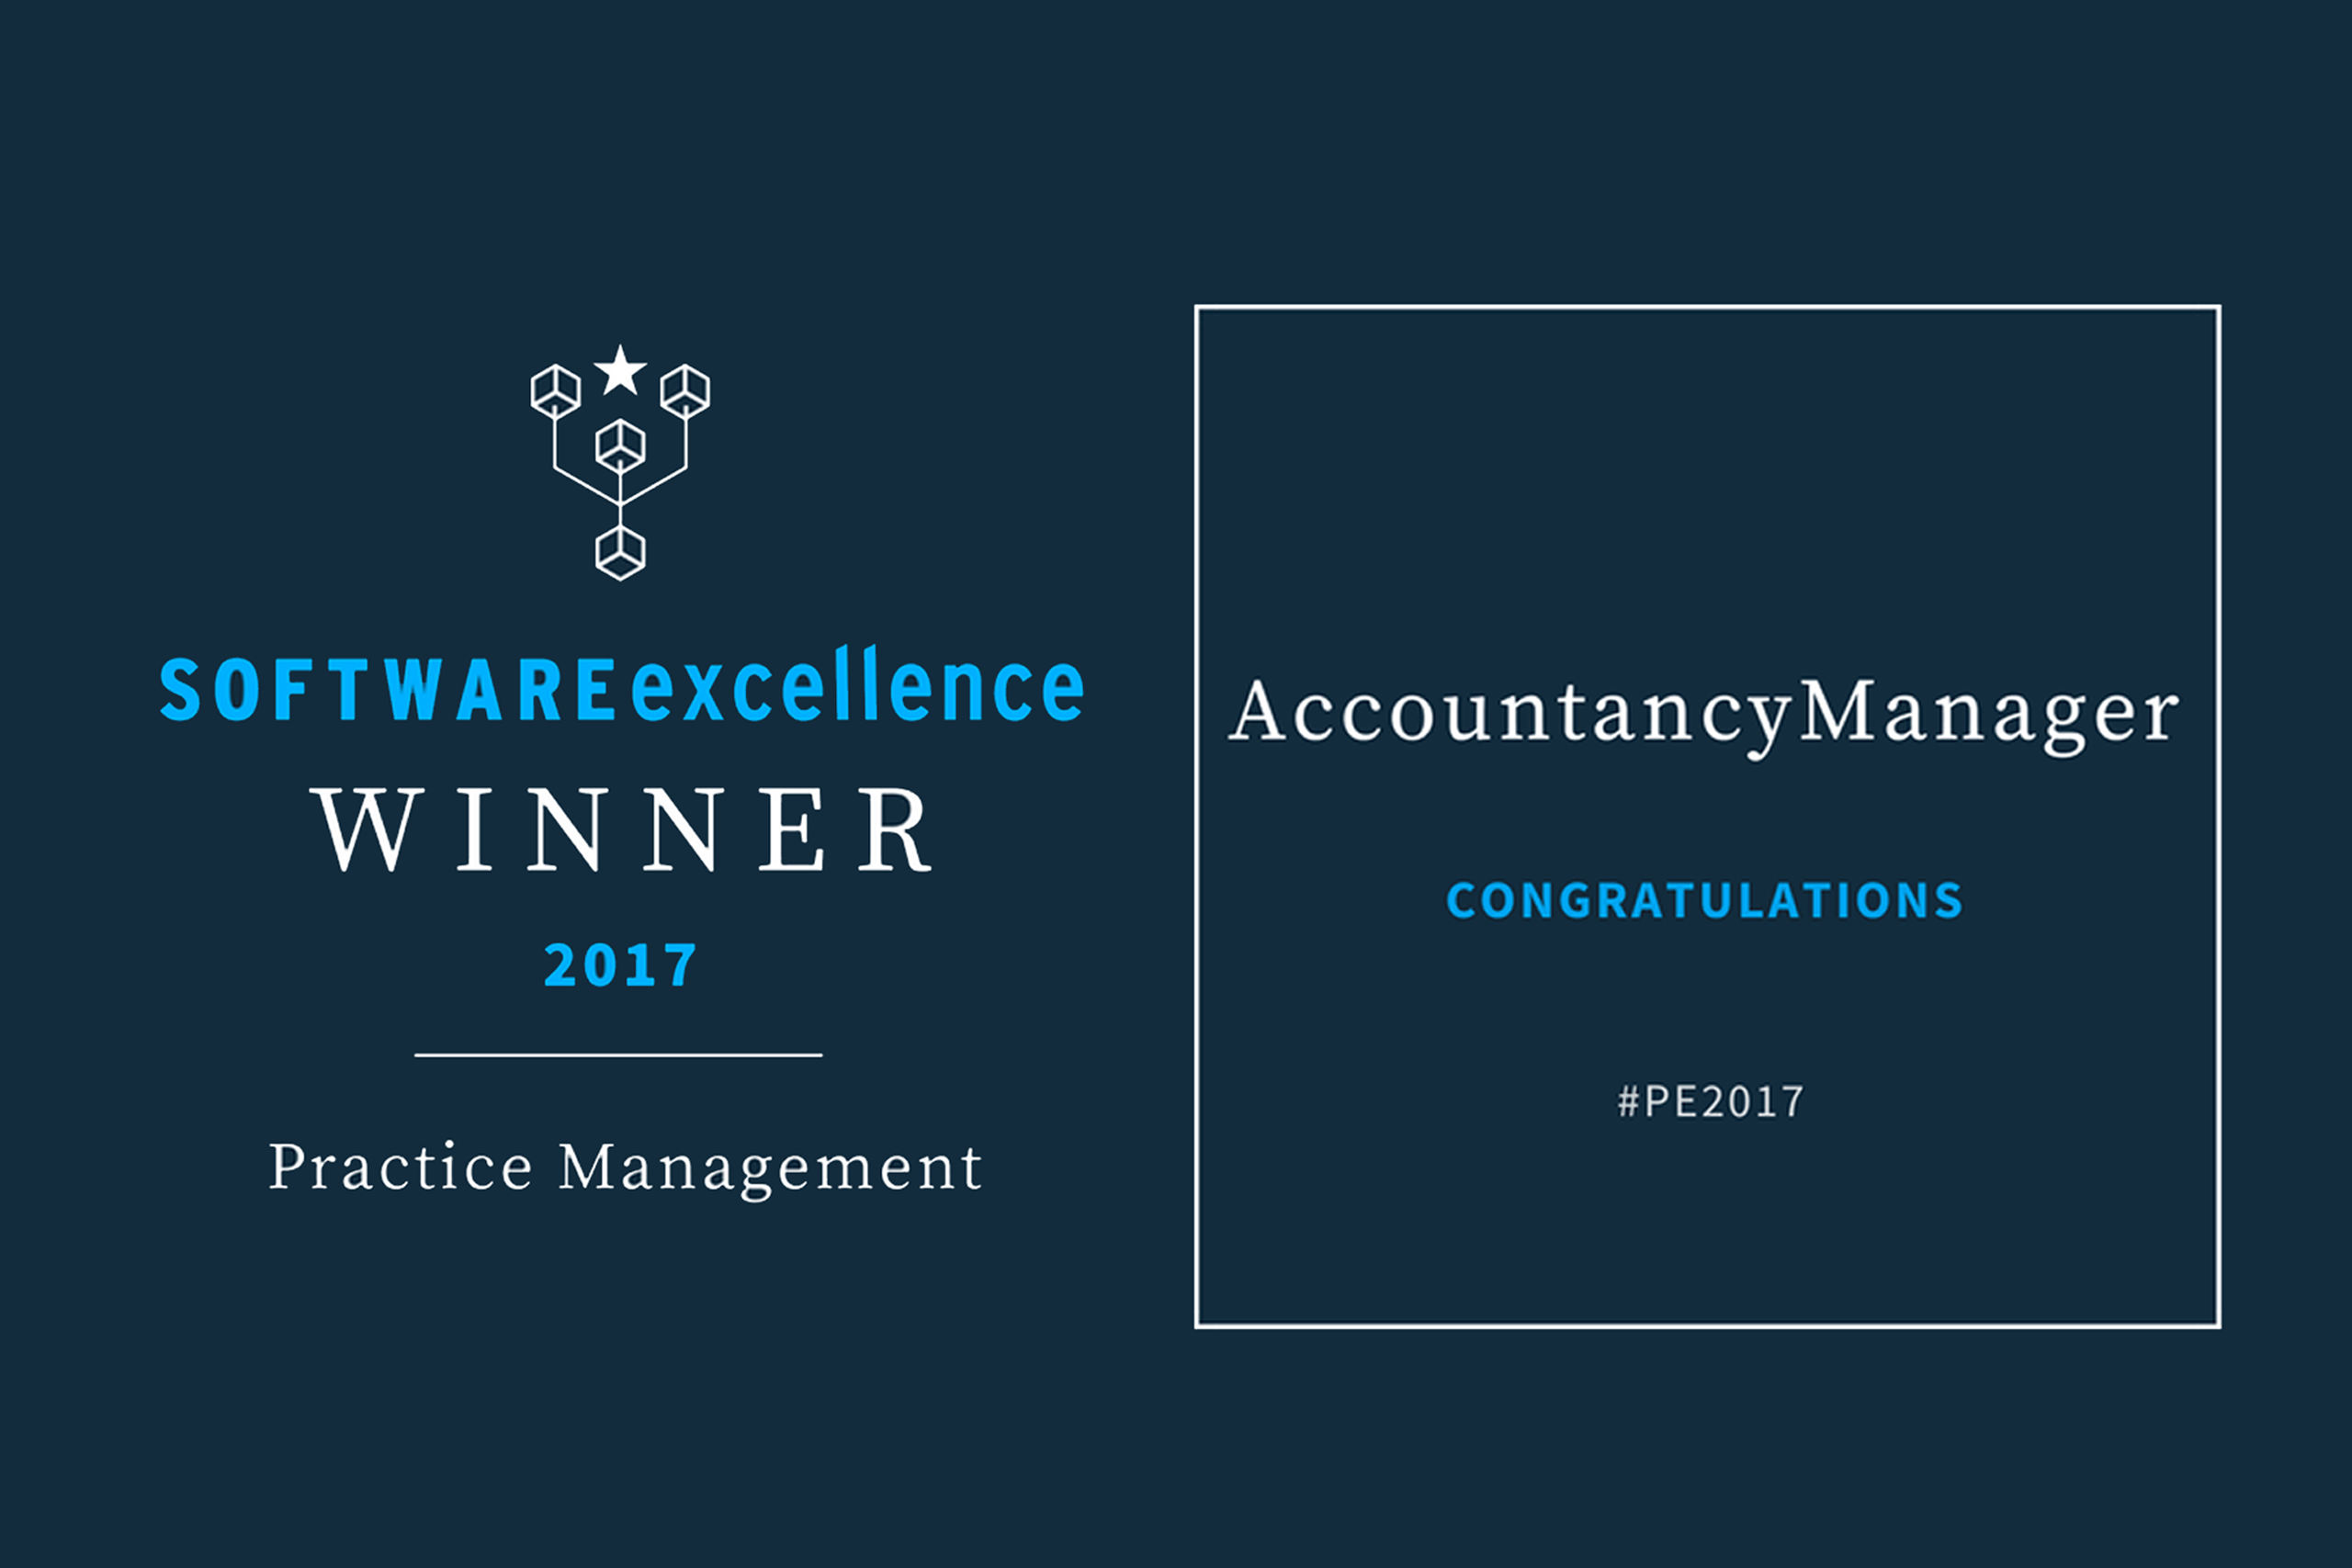 AccountancyManager Wins the Software Excellence 'Practice Management' Award